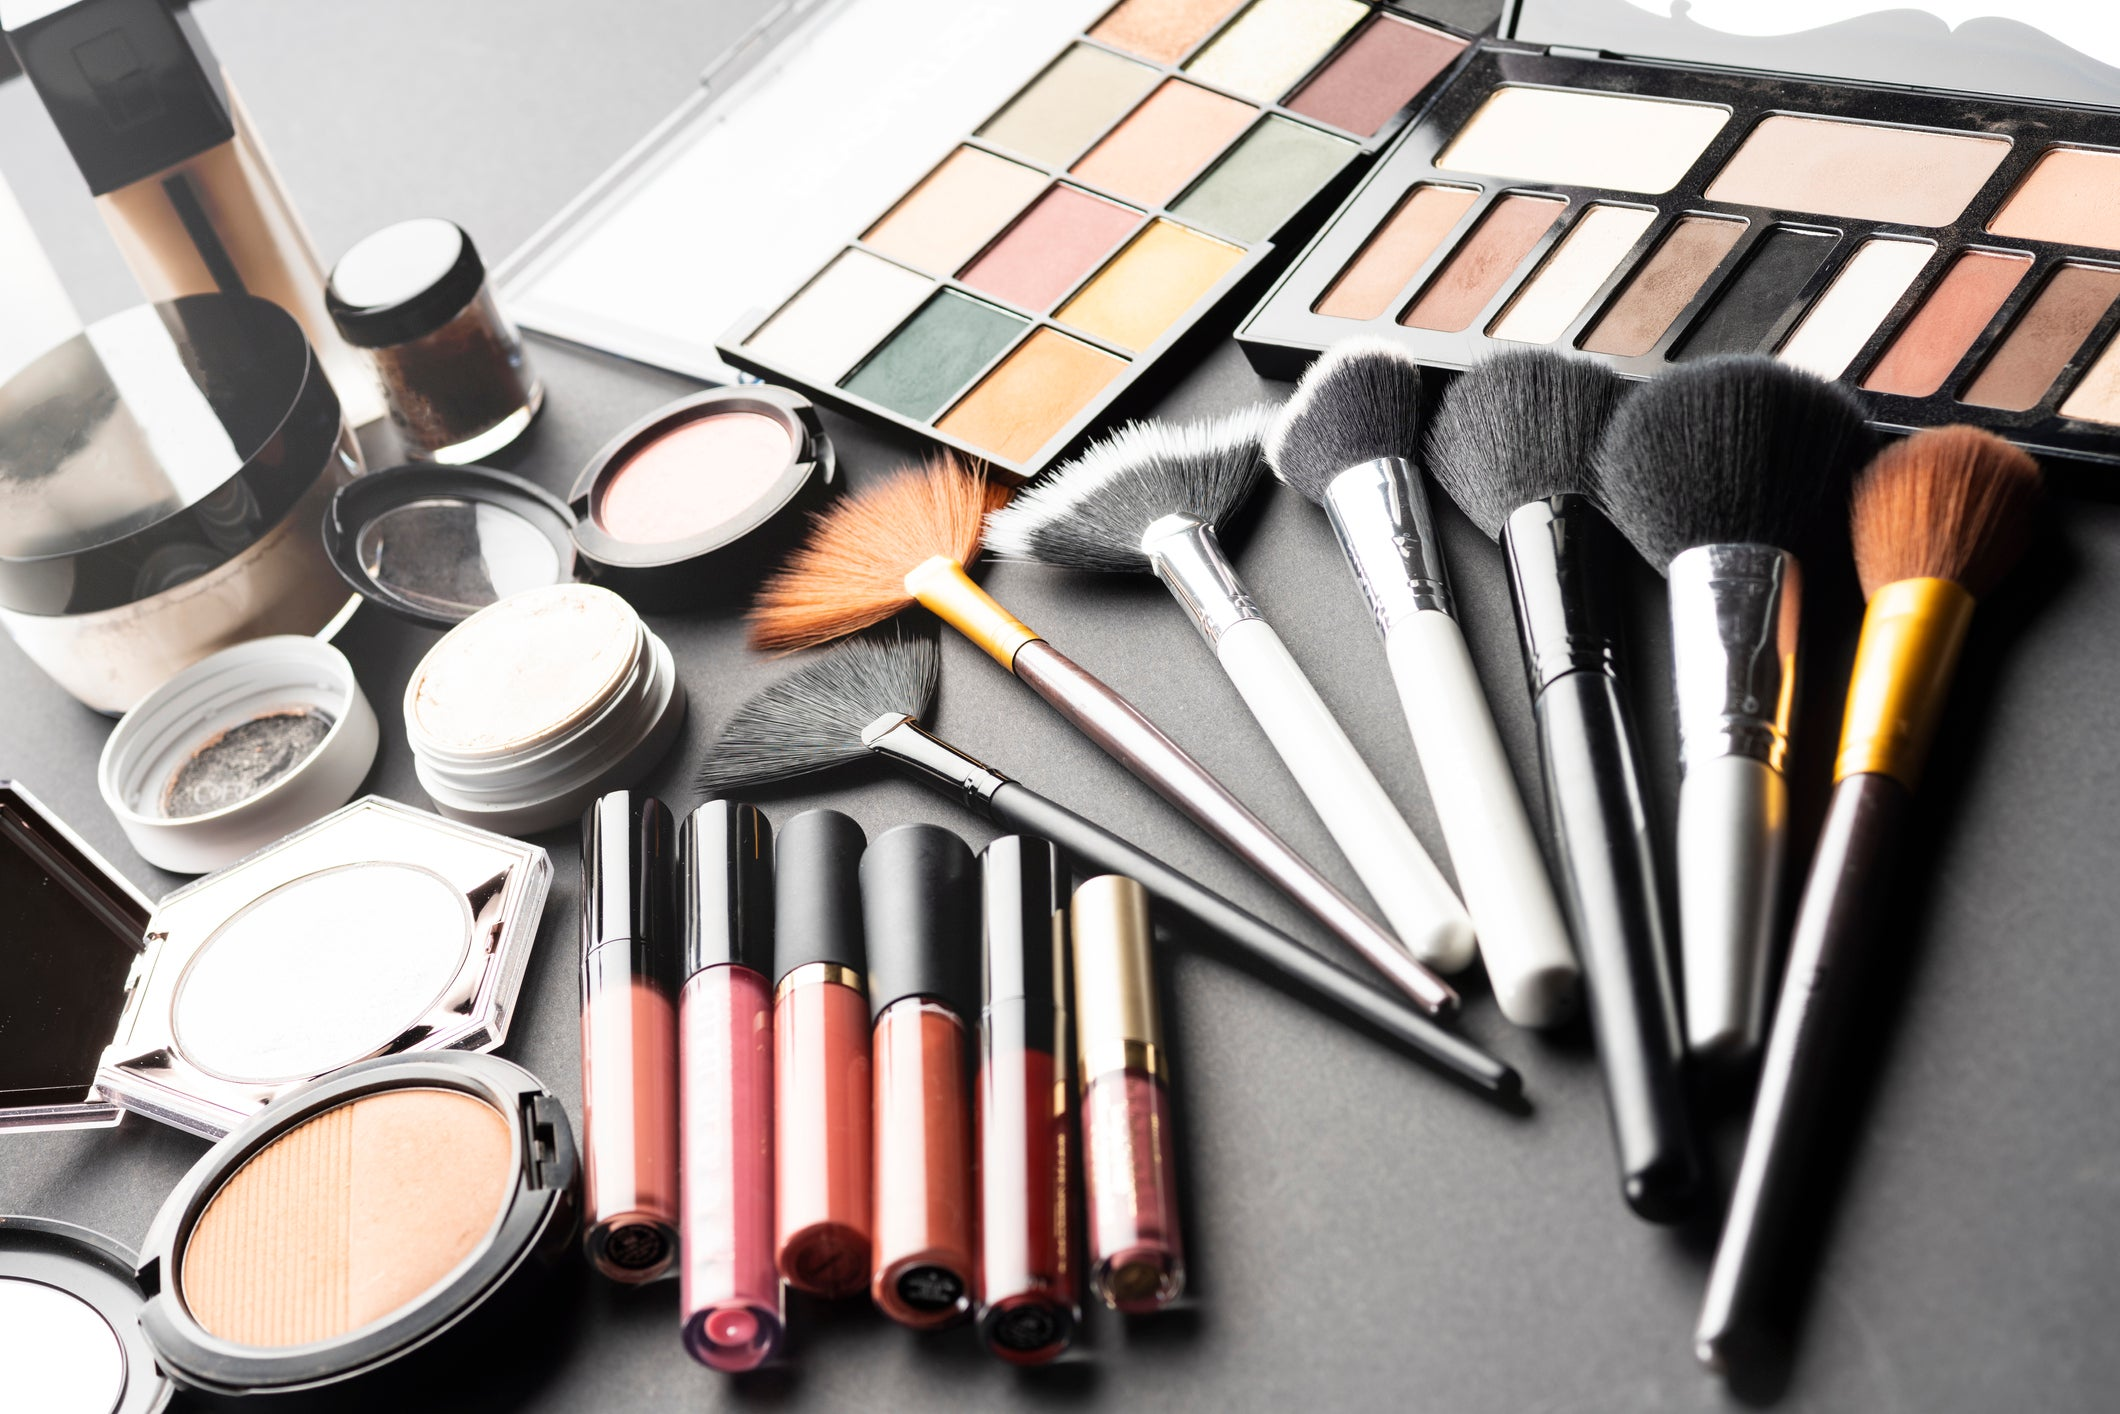 Ulta Beauty Will Survive Despite Challenges of Cyclical Lull and Changing Environment